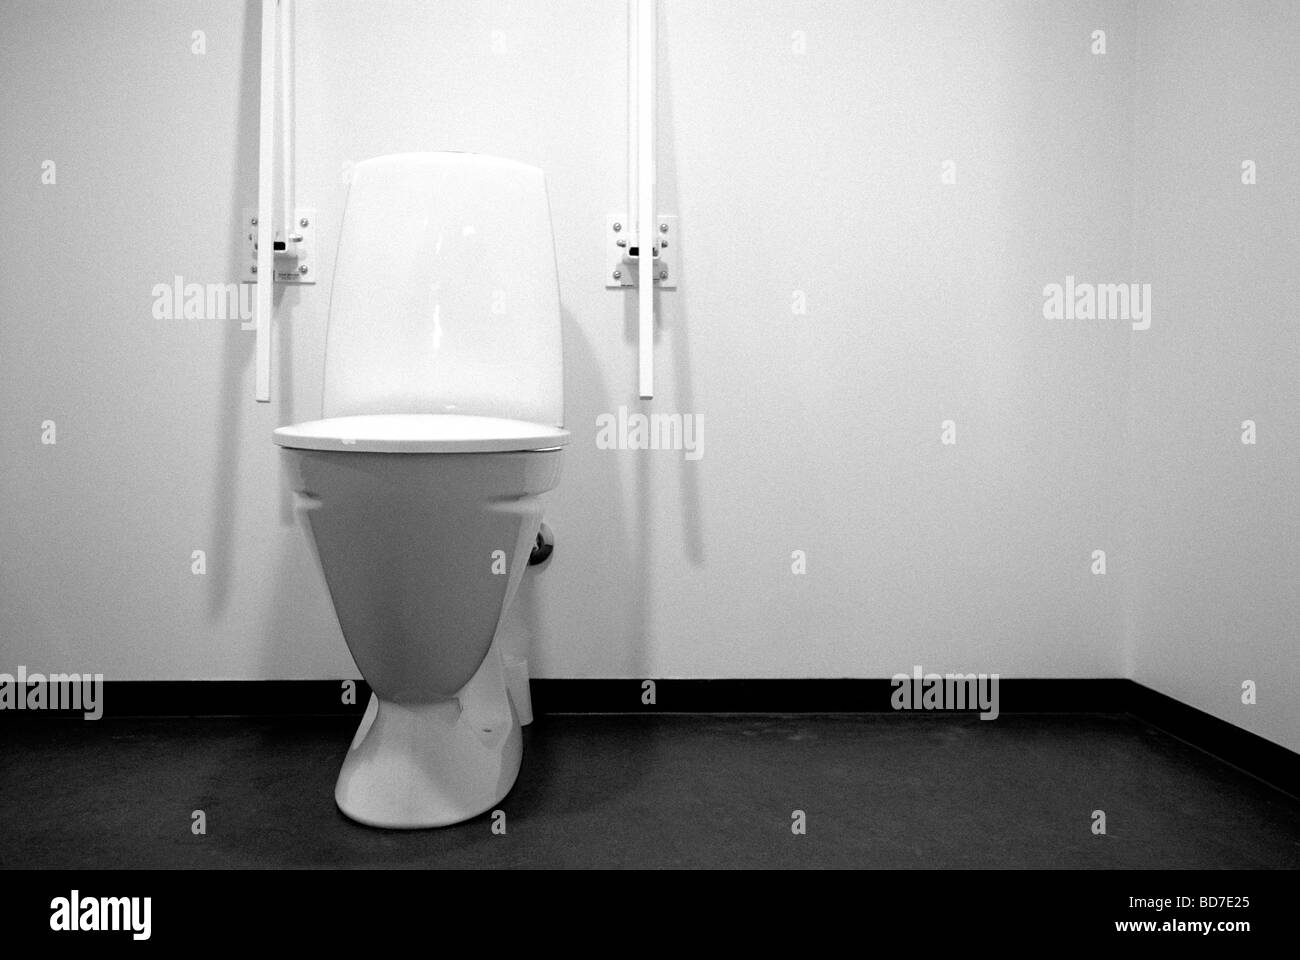 restroom stockfotos restroom bilder alamy. Black Bedroom Furniture Sets. Home Design Ideas